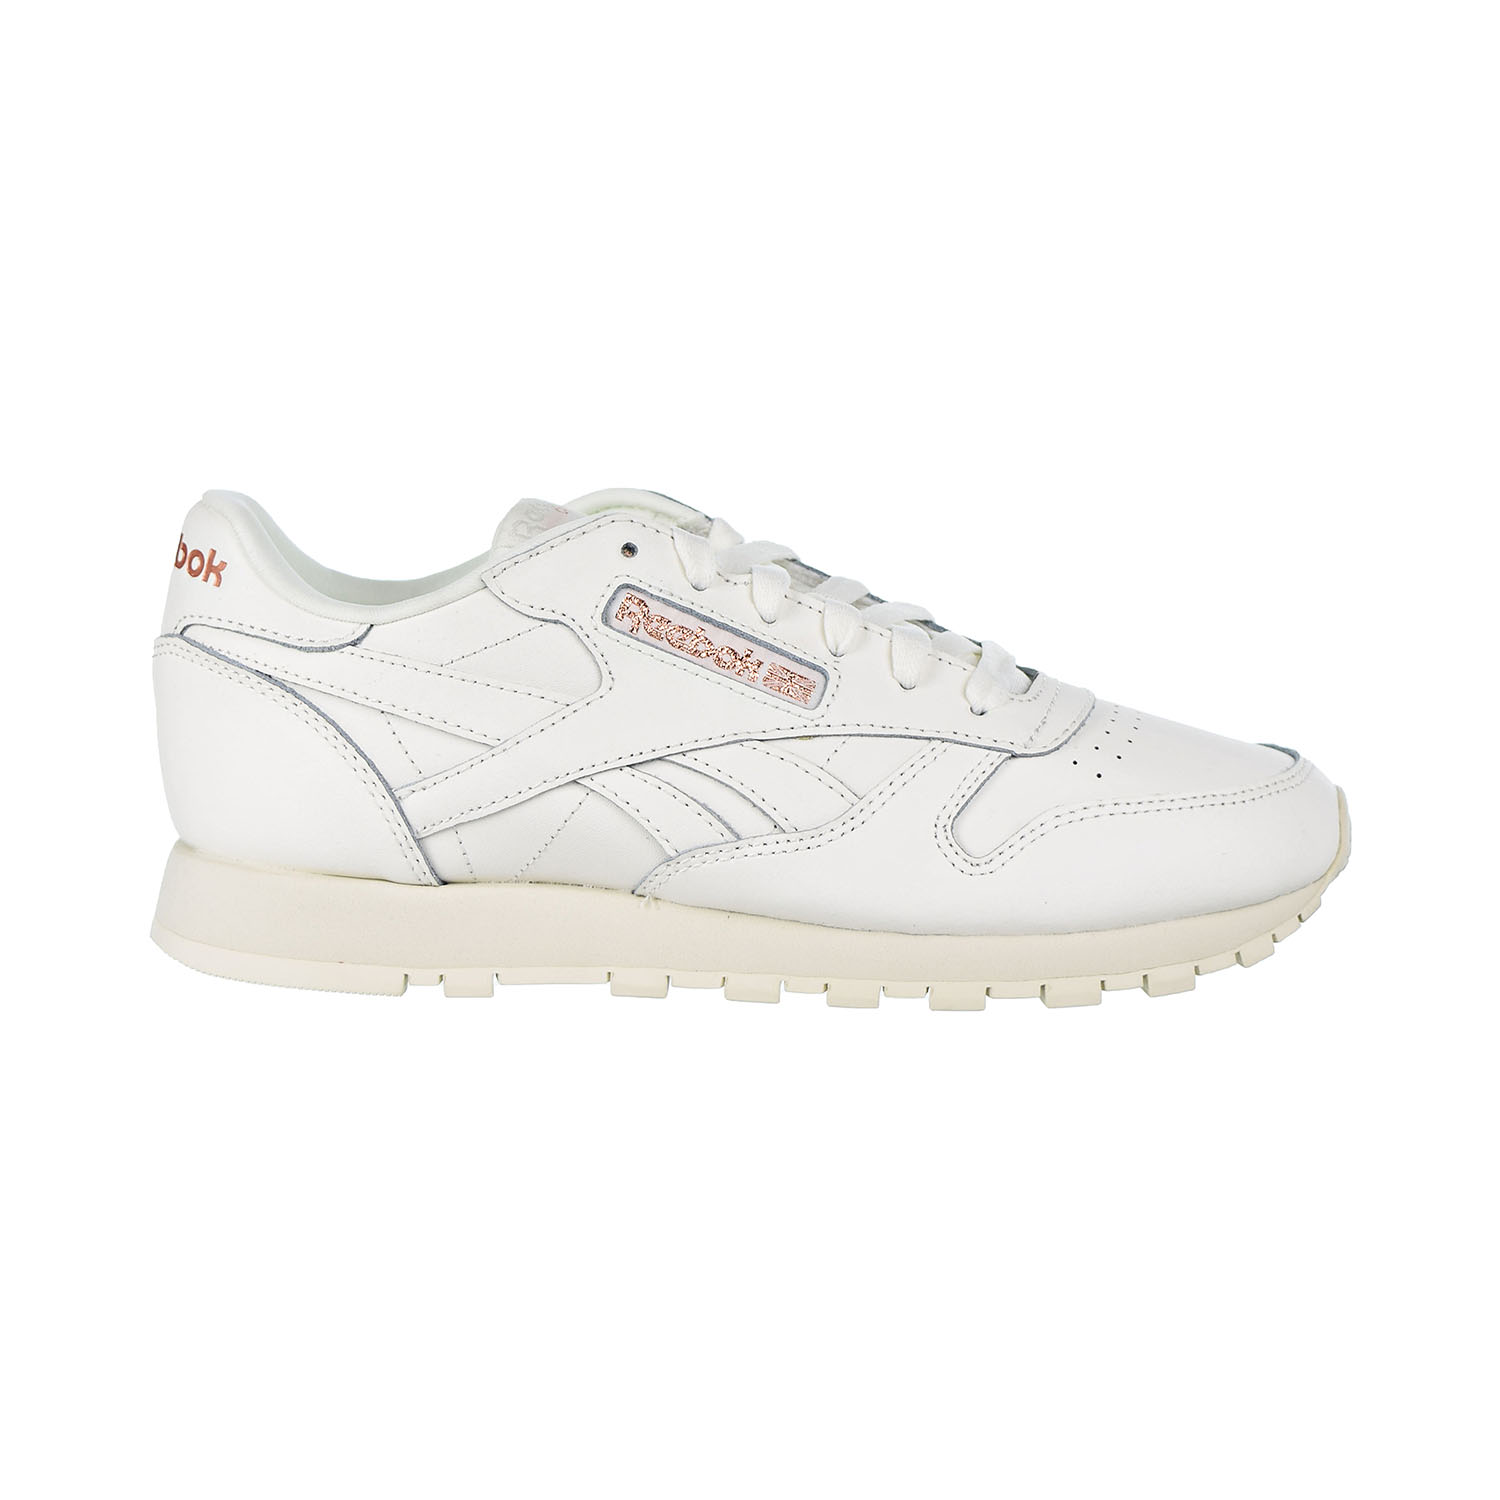 74548b017bf Reebok Classic Leather Women s Shoes Chalk Rose Gold Paper White dv3762